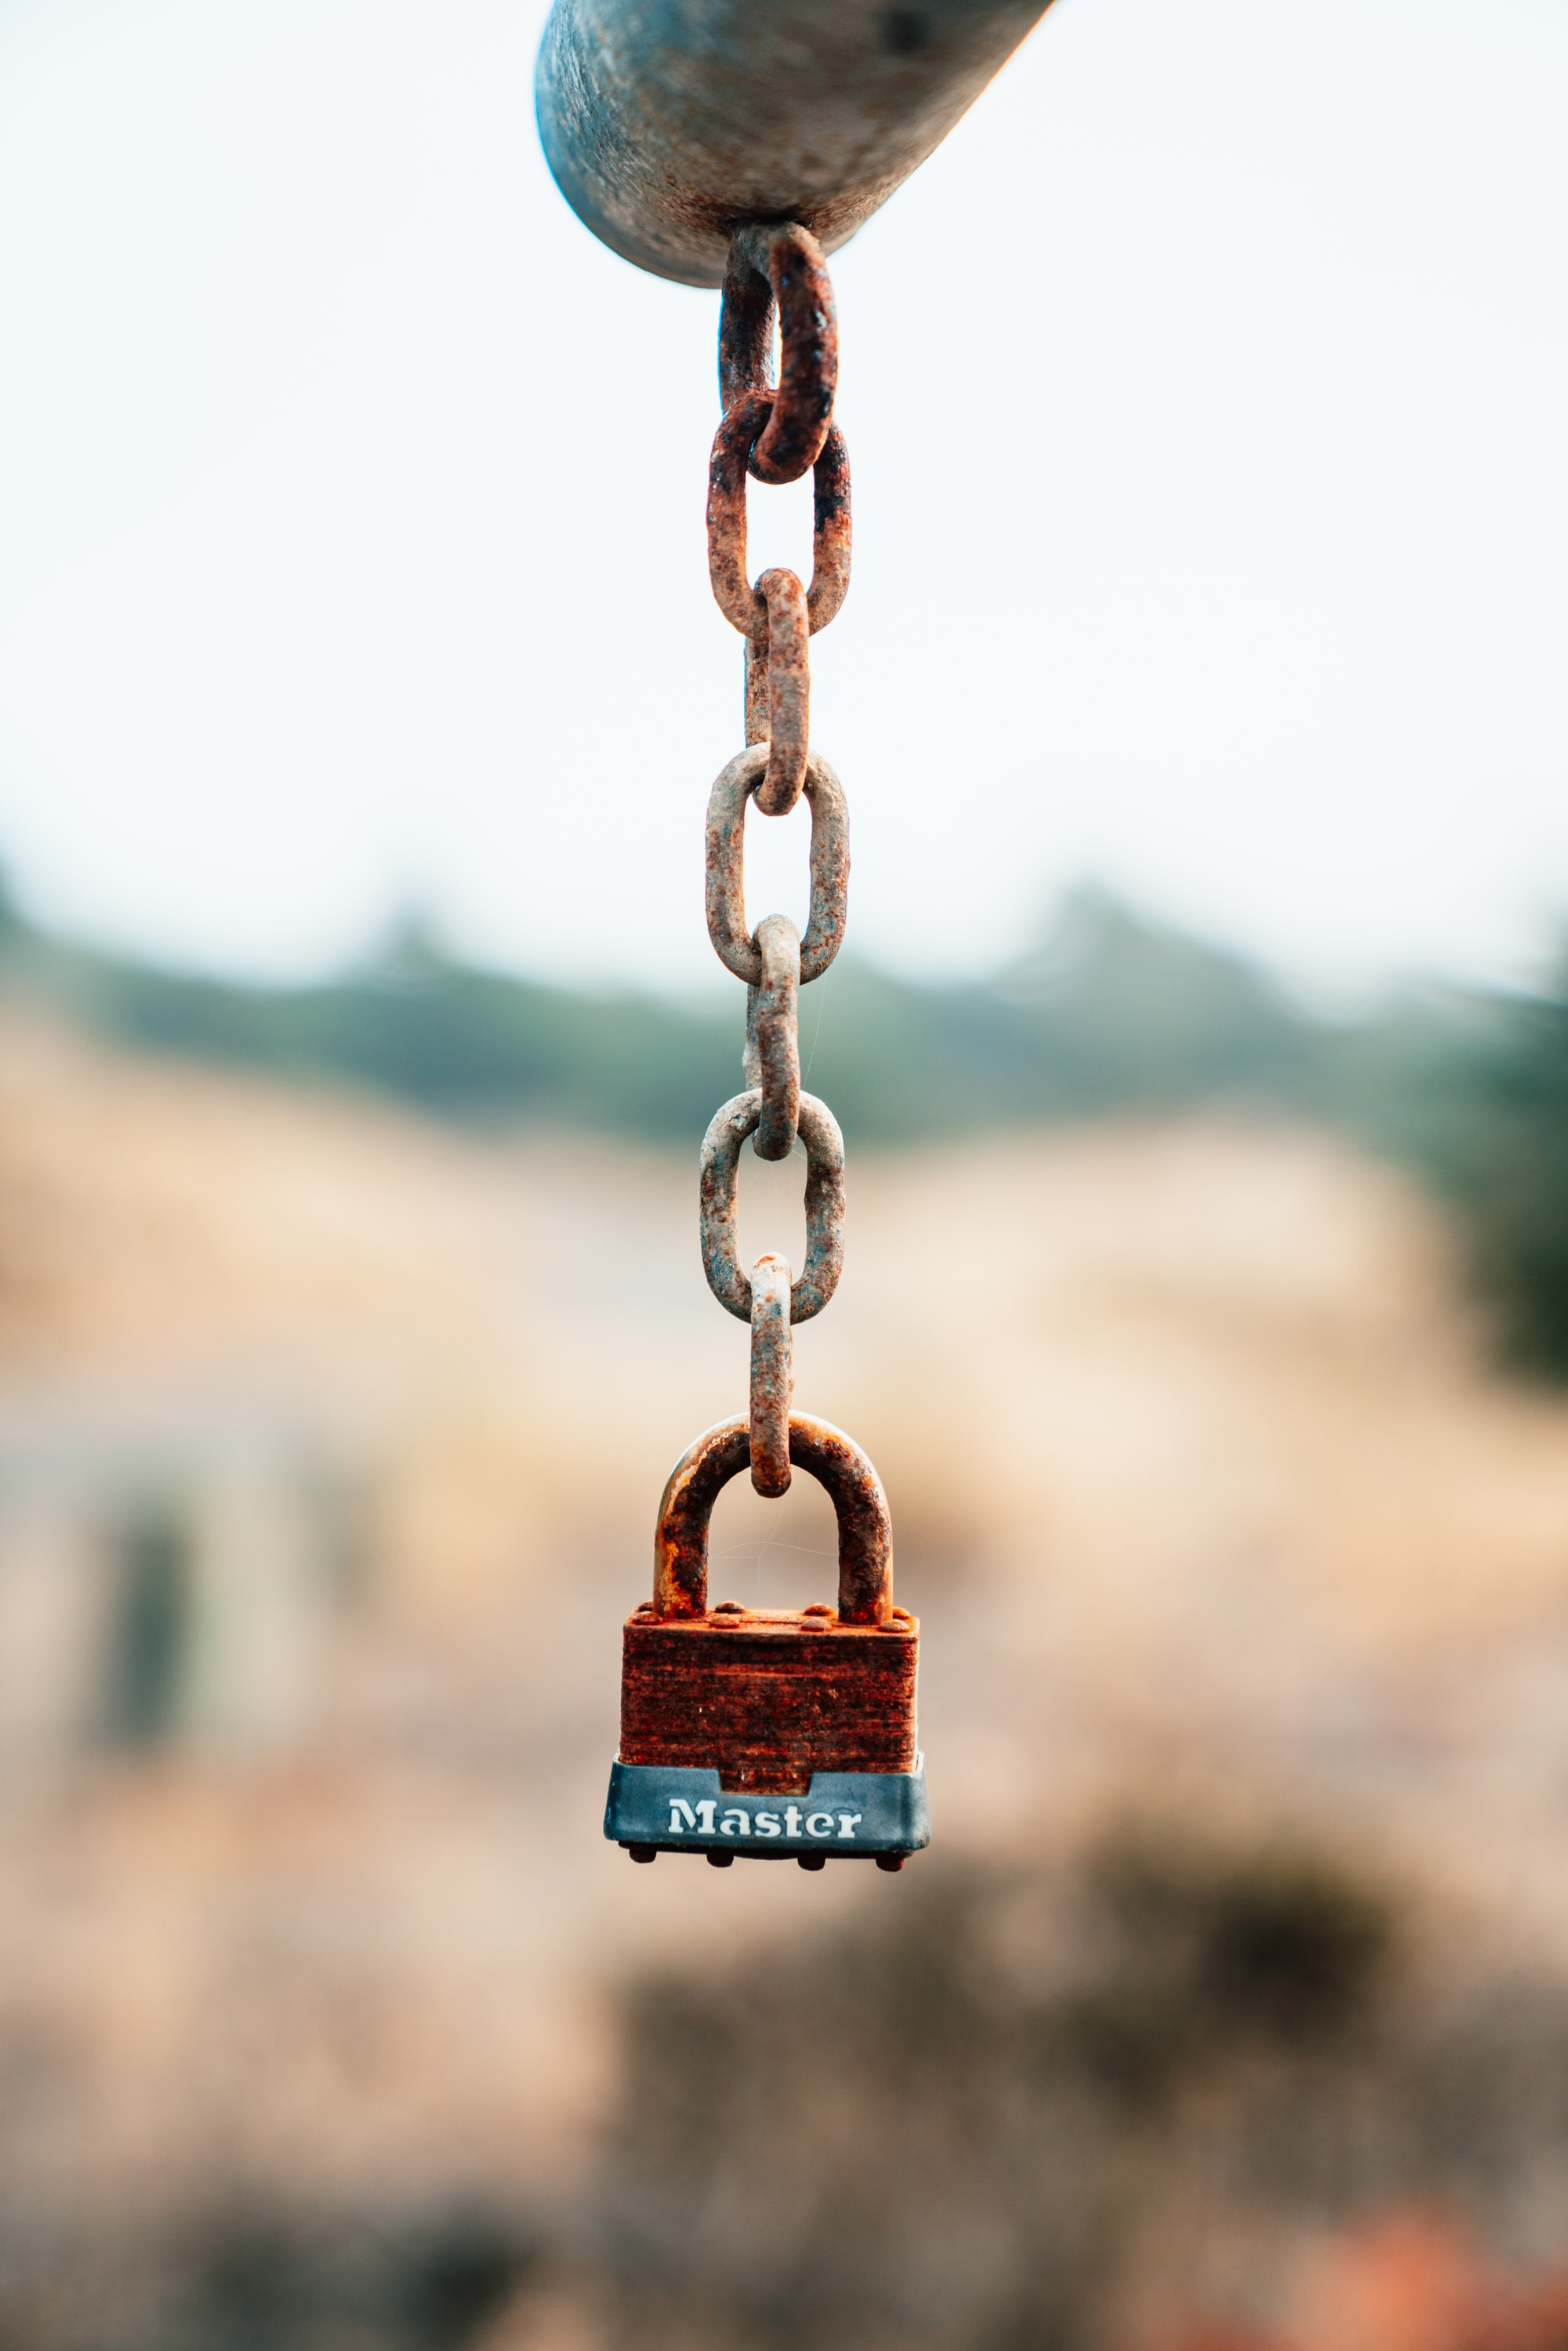 Rusted Master padlock hanging on the old chain of a state park gate.